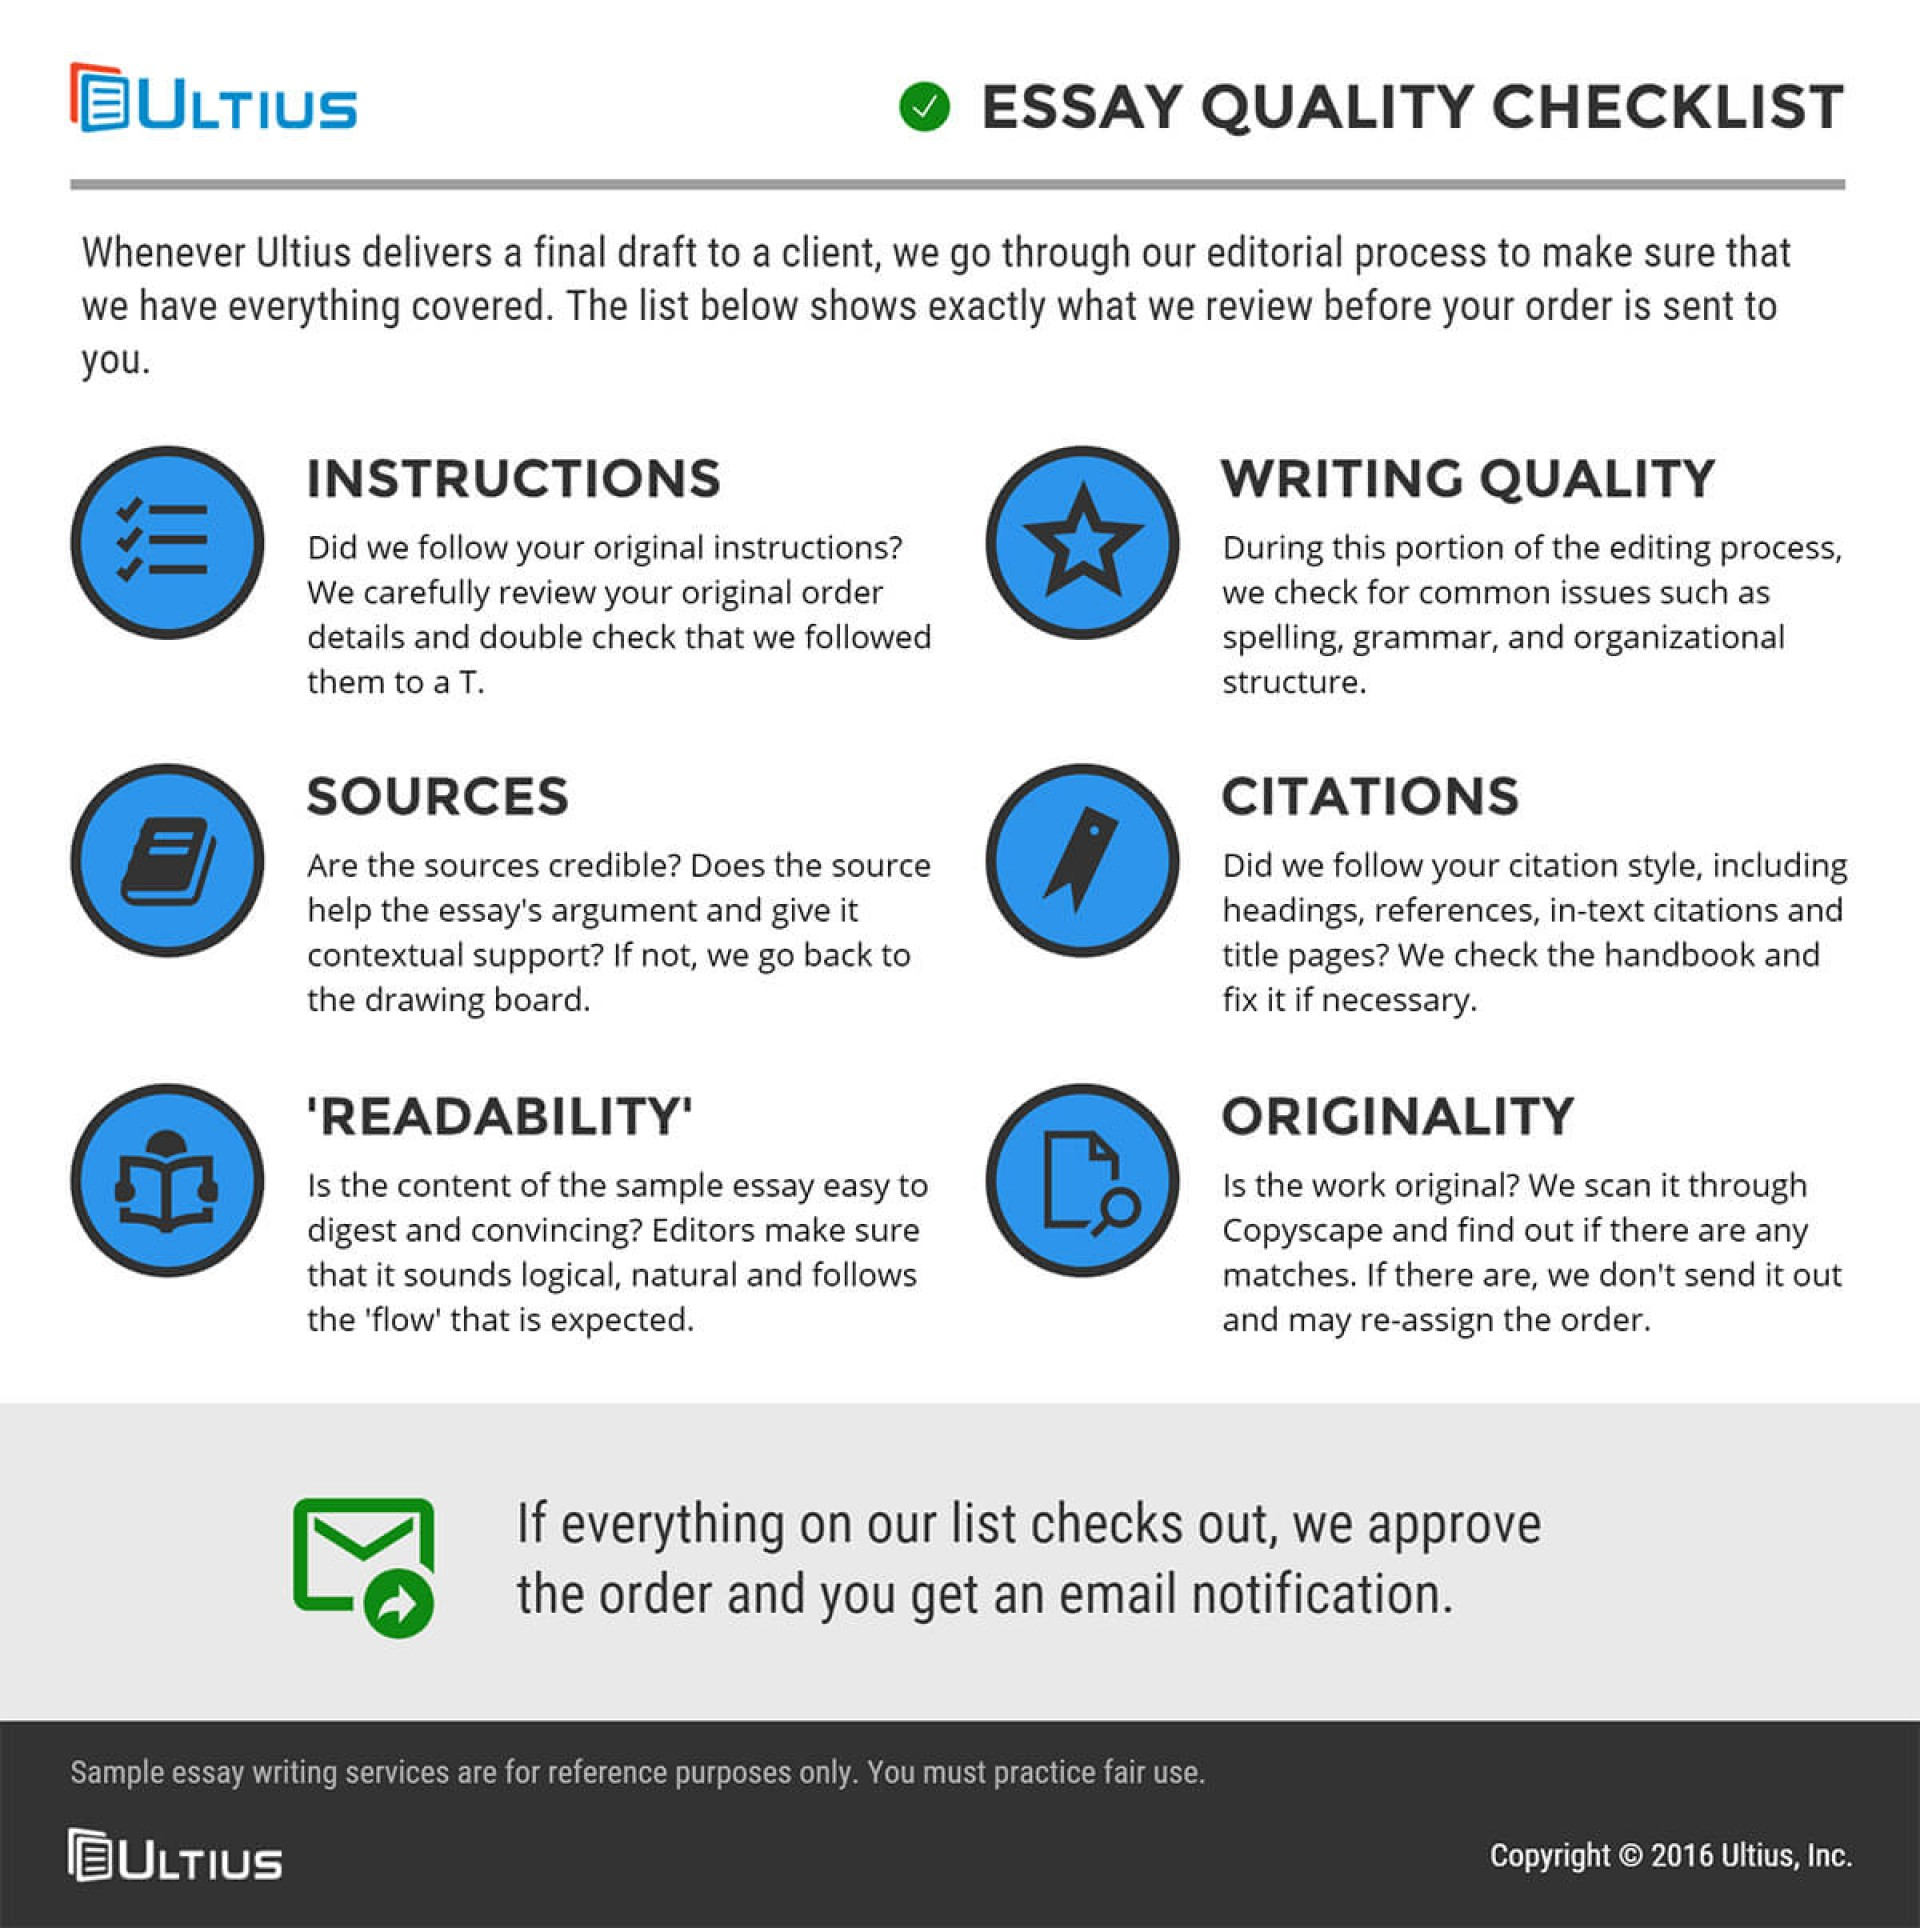 003 Essay Quality Checklist Buy Papers Magnificent 1920